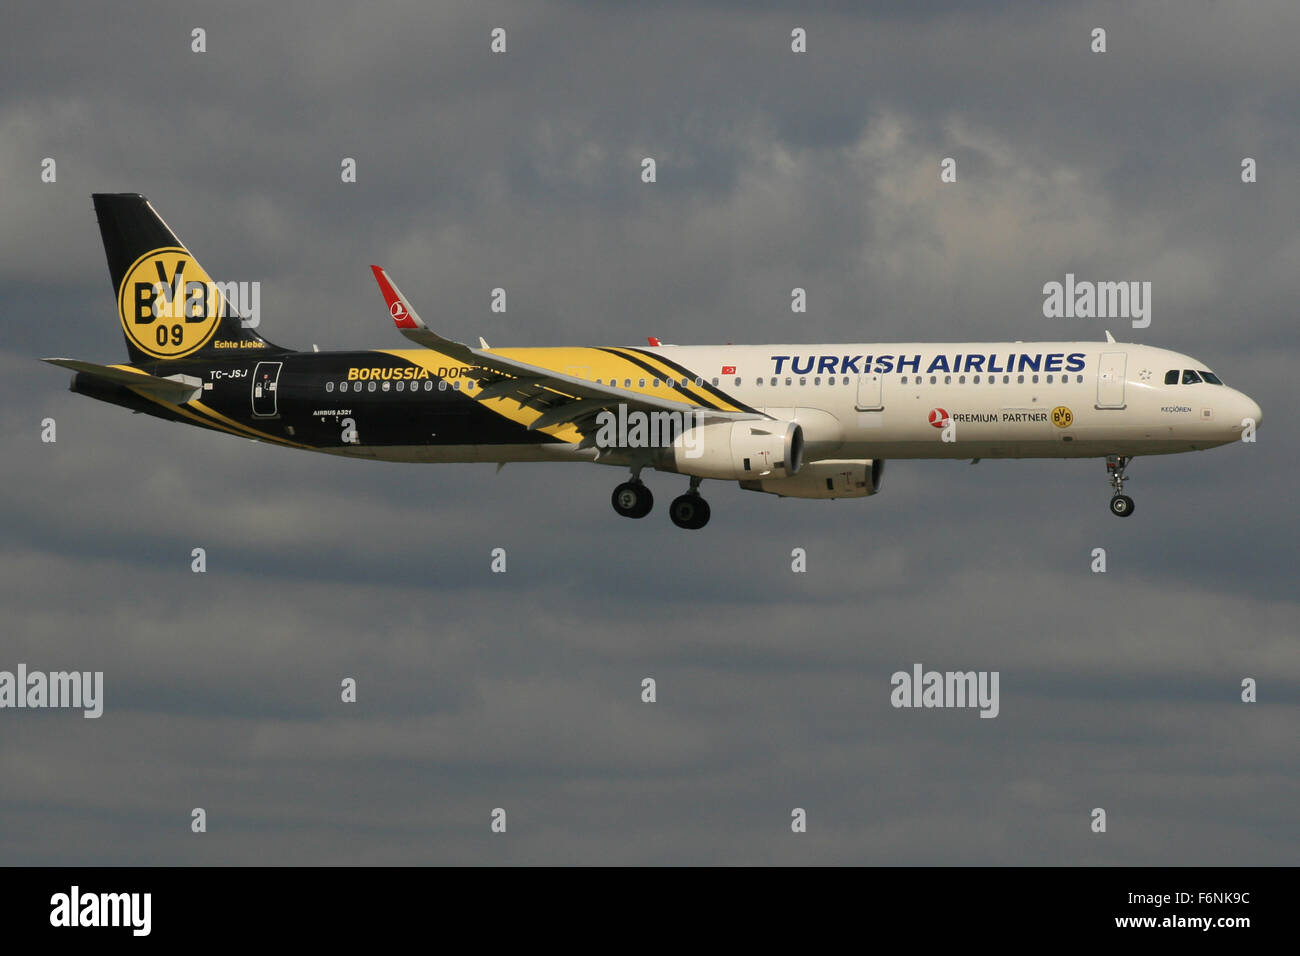 TURKISH AIRLINES A321 DORTMUND BVB FOOTBALL COLOURS - Stock Image